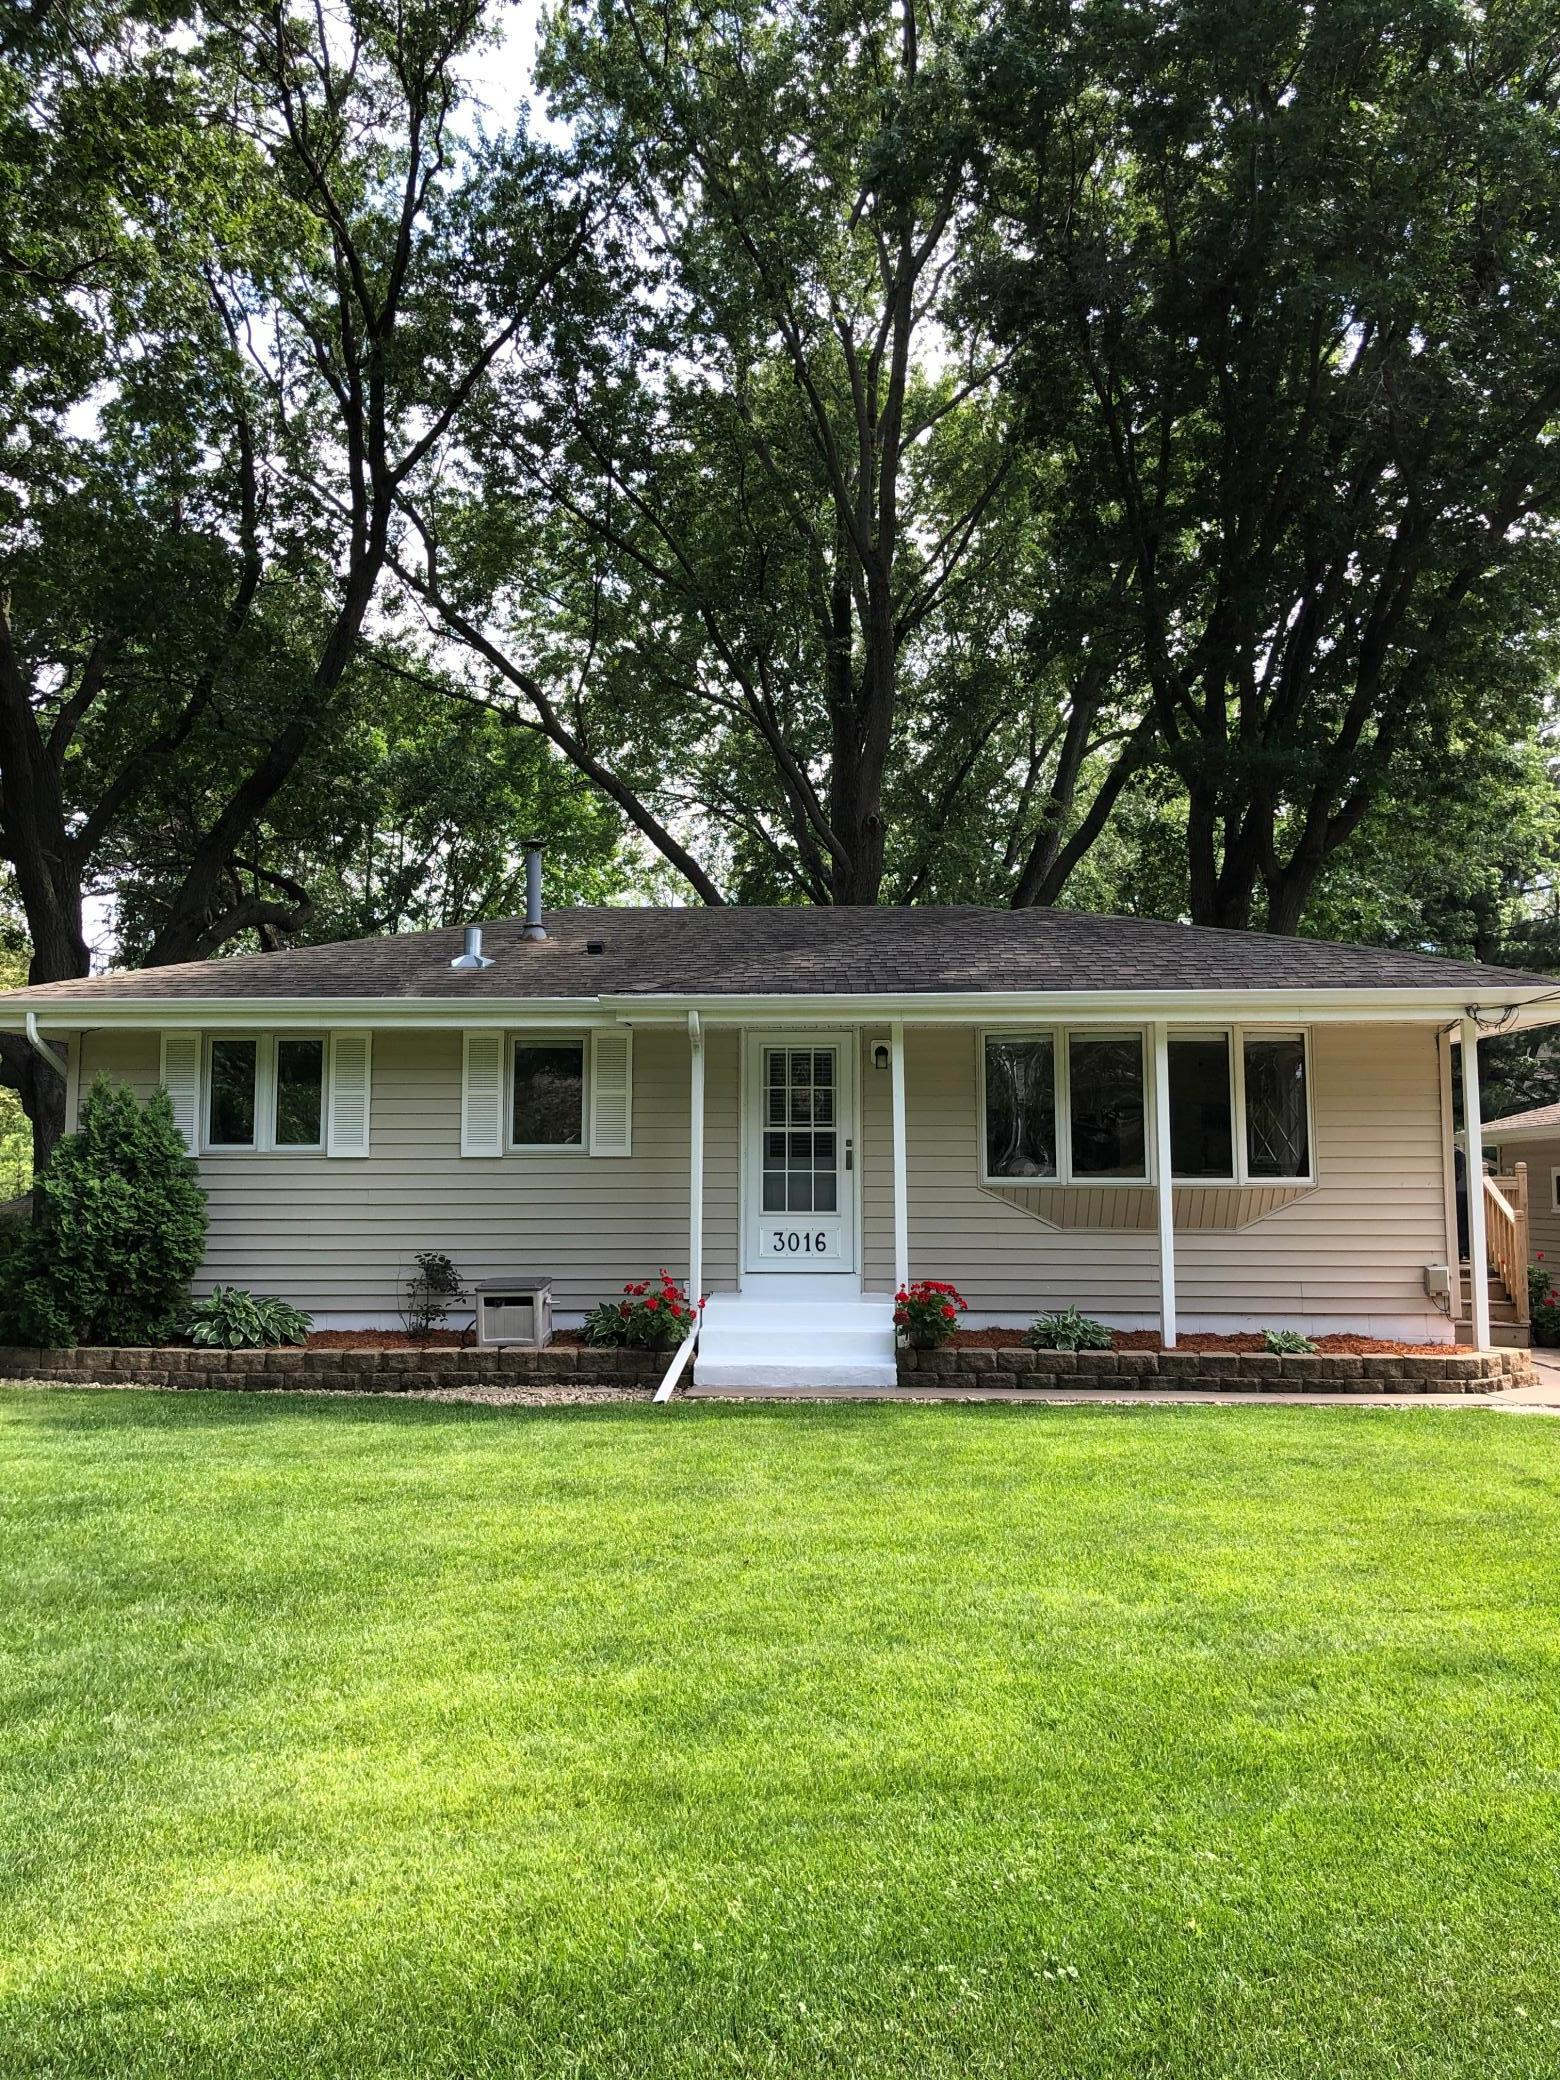 3016 Woodale Property Photo - Mounds View, MN real estate listing